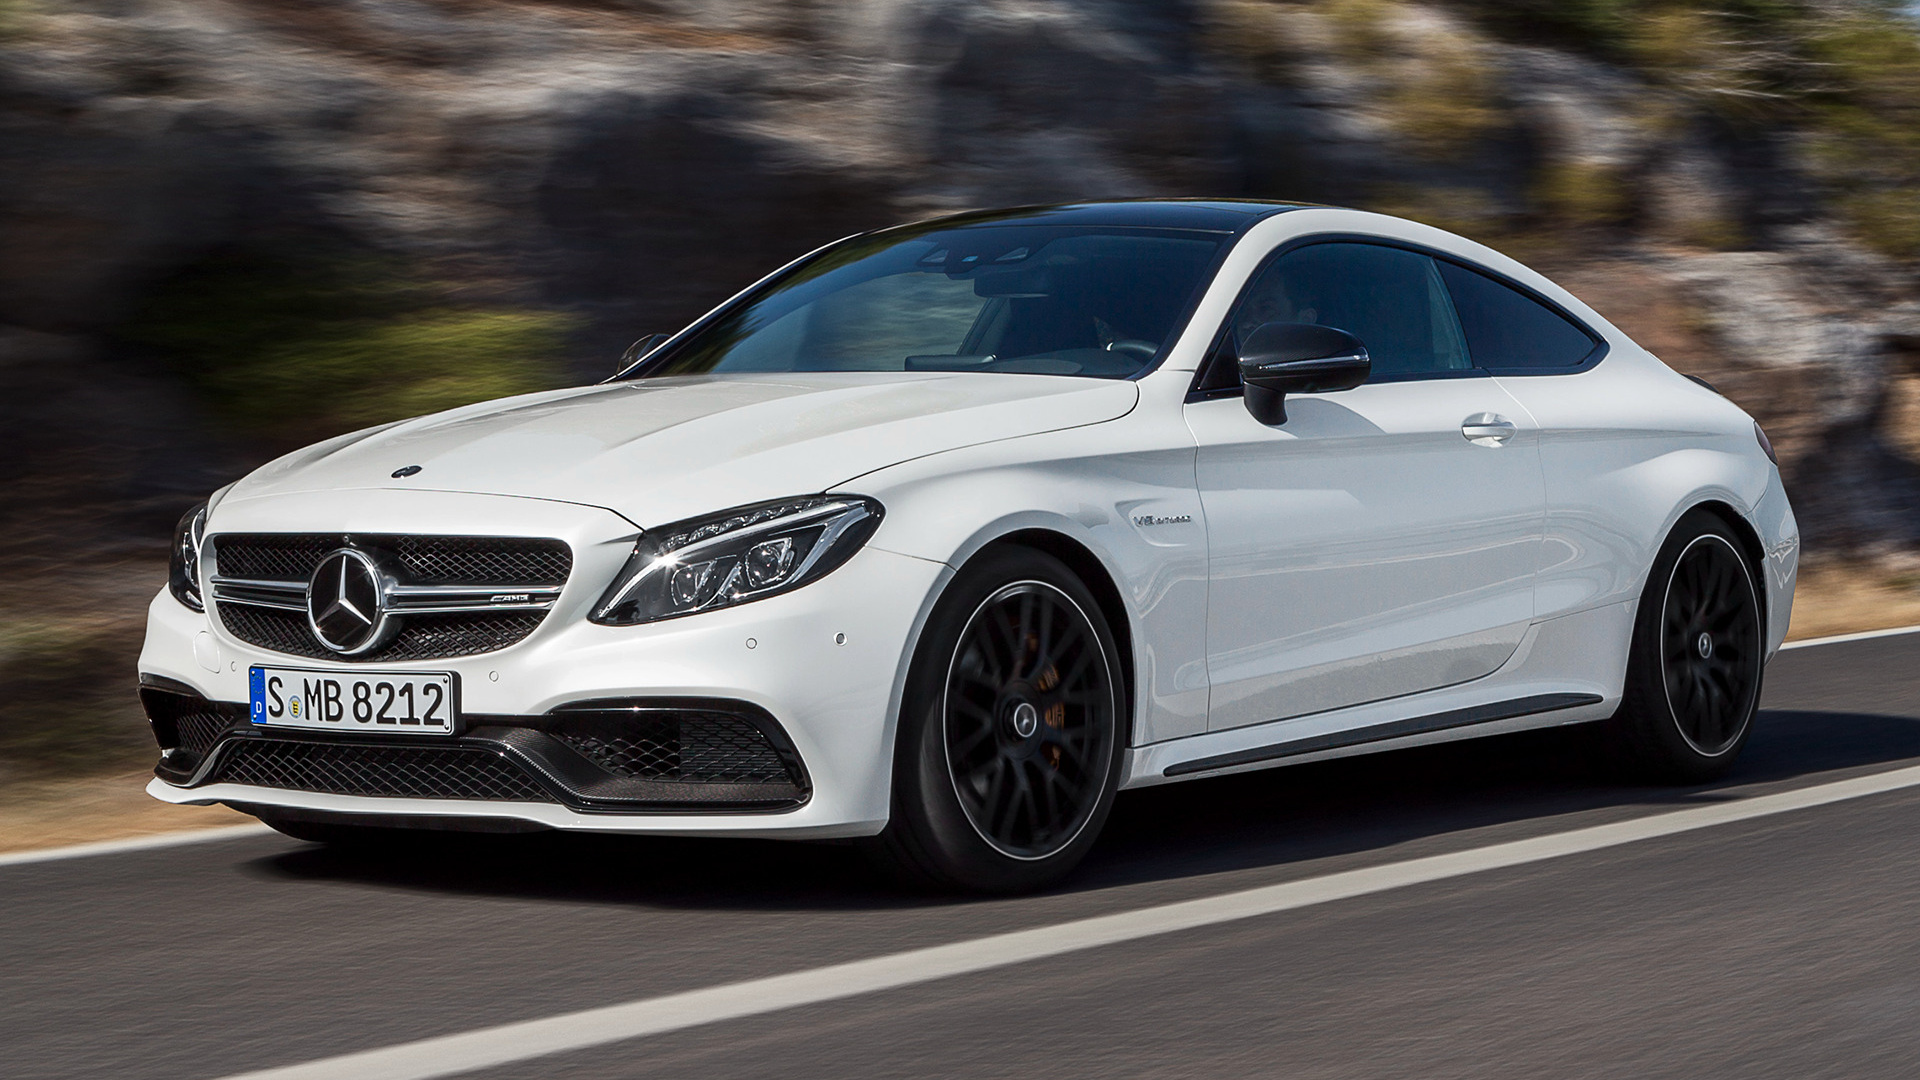 Mercedes amg c 63 s coupe edition 1 2016 wallpapers and hd images - Mercedes Amg C 63 S Coupe 2016 Thumbnail 32350 32350 Hd 16 9